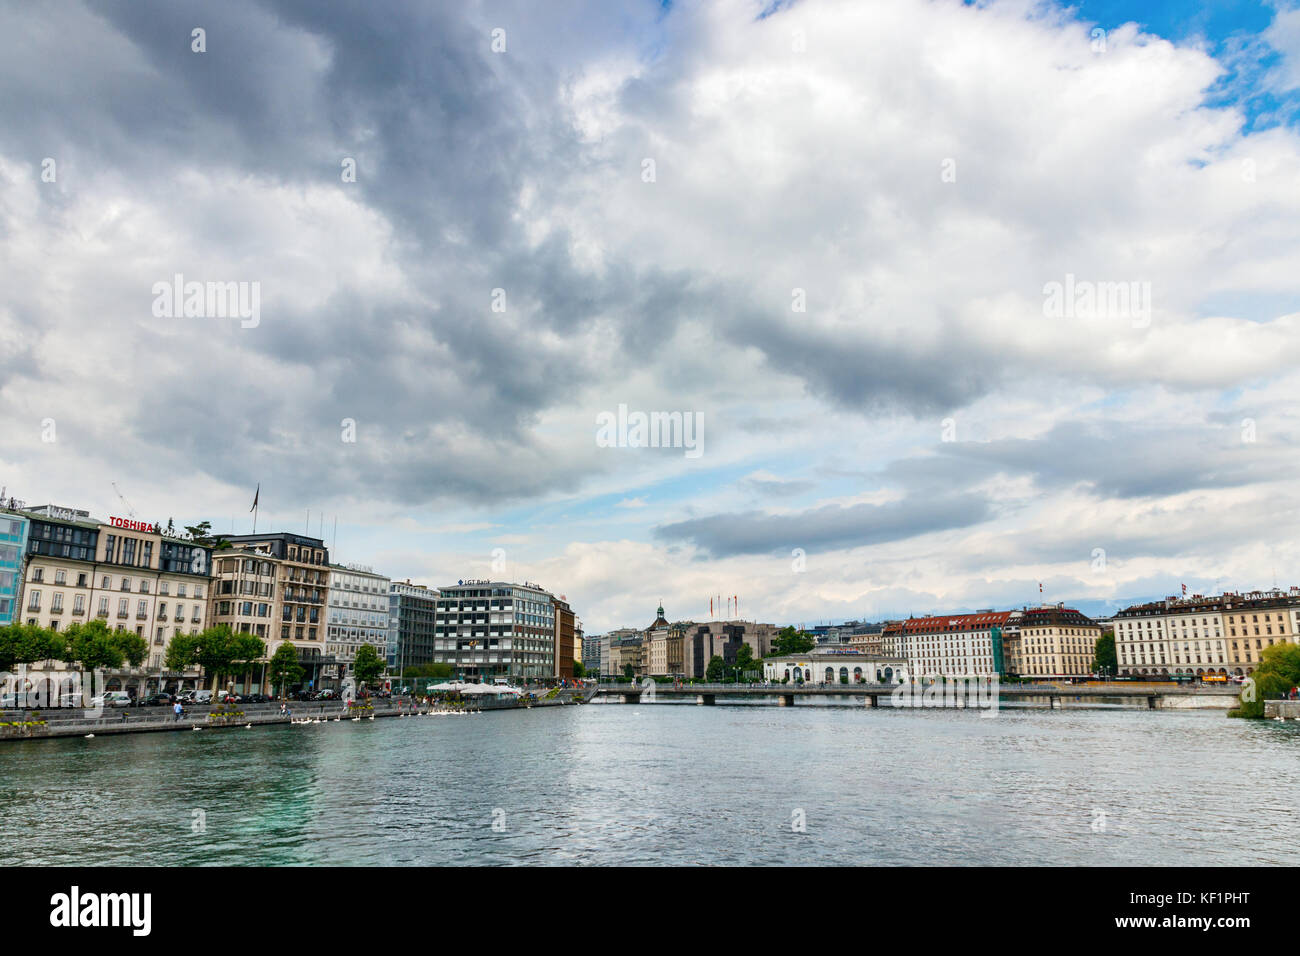 View of the Old Town with the Rhone and the bridge Pont de la Machine under a cloudy sky. Geneva, Switzerland. - Stock Image